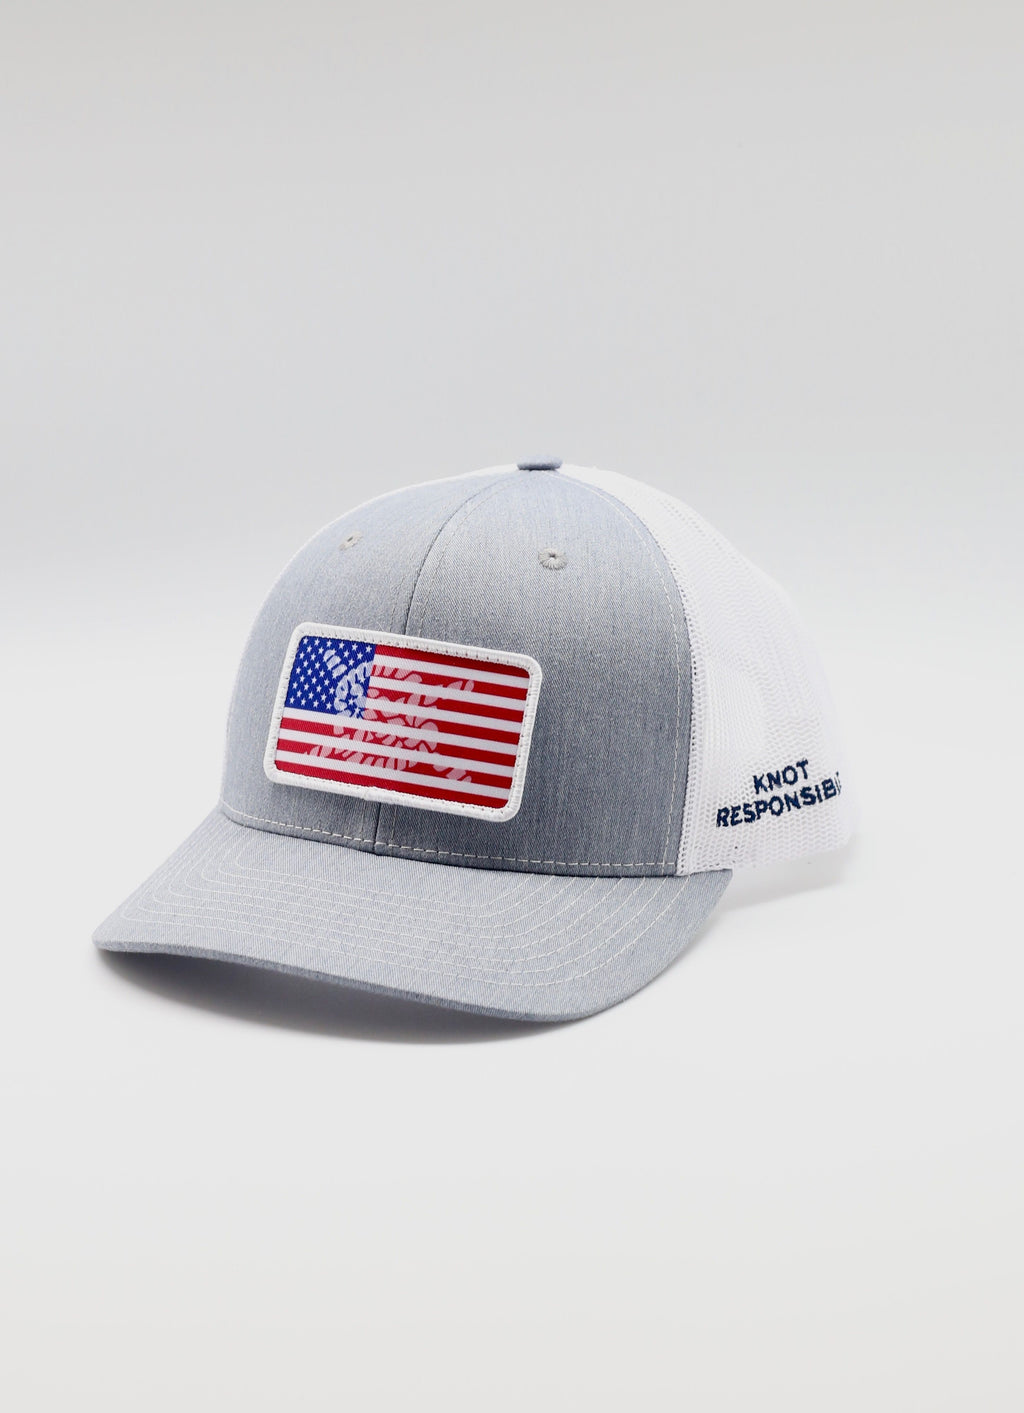 Limited Edition USA Patch Trucker Hat- Grey/White - Caroline Hill